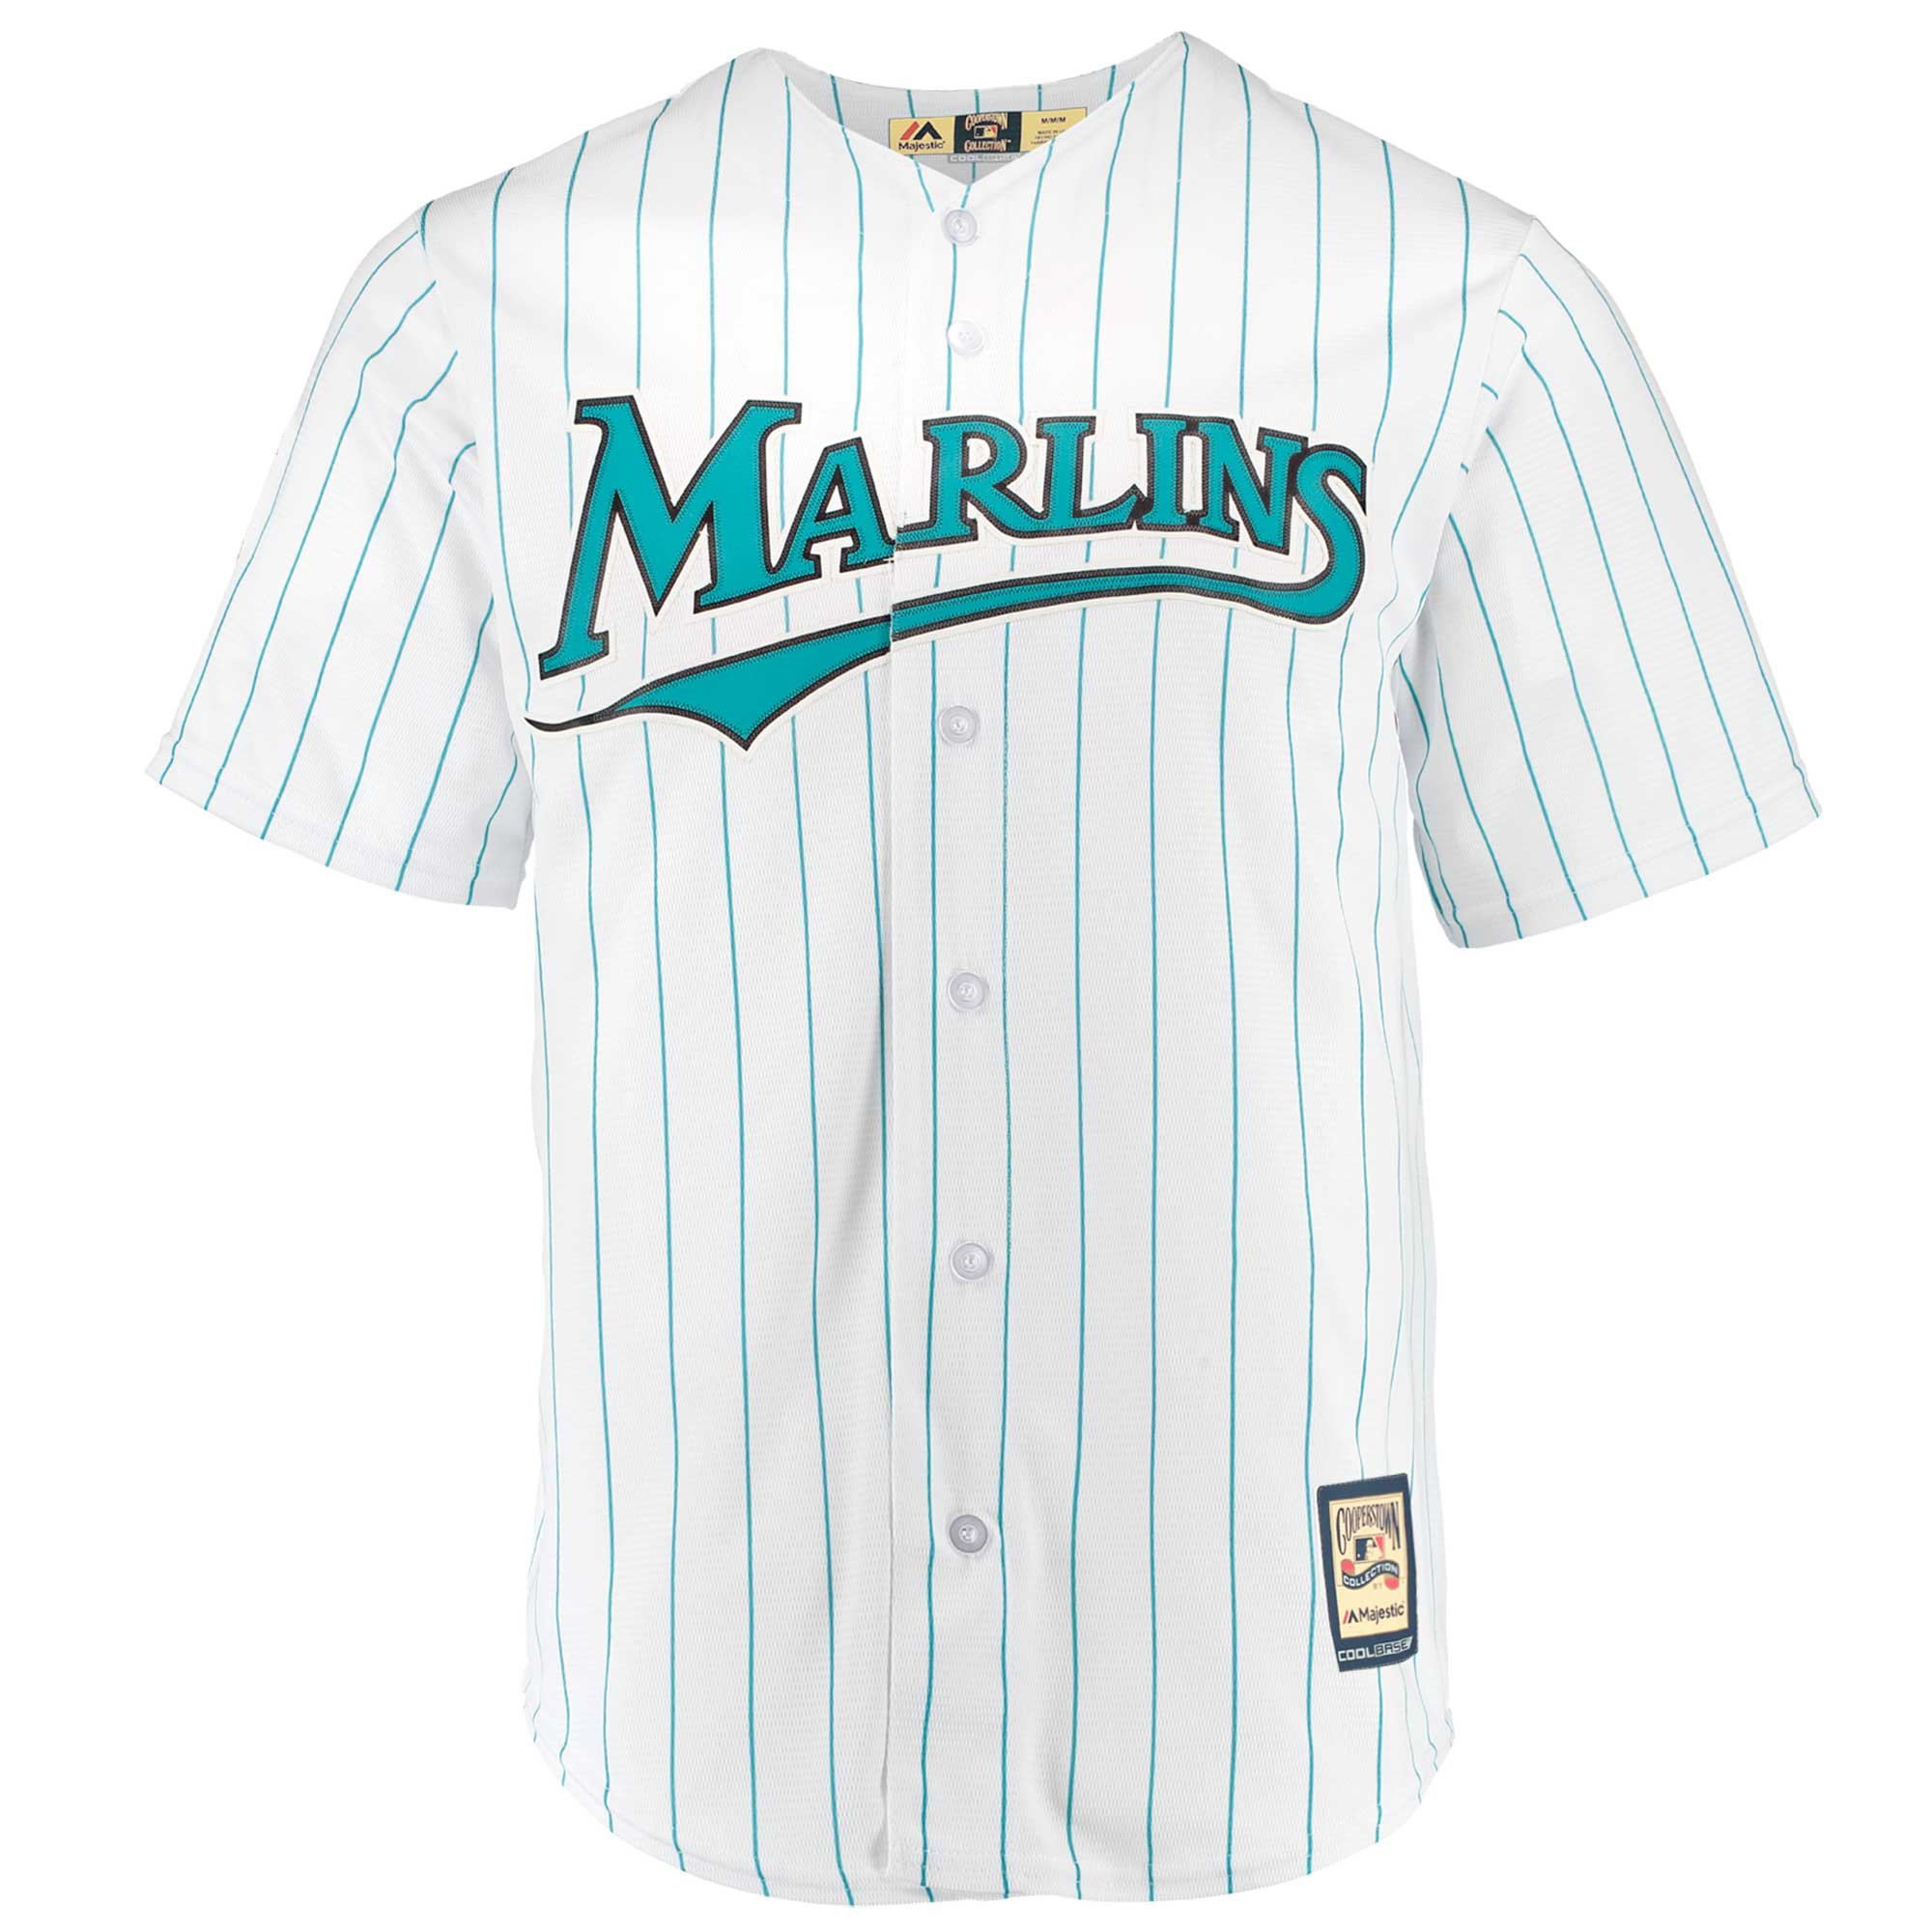 6565dabb3 Miami Marlins Majestic Home Cooperstown Collection Team Cool Base Jersey -  White Aqua - Walmart.com